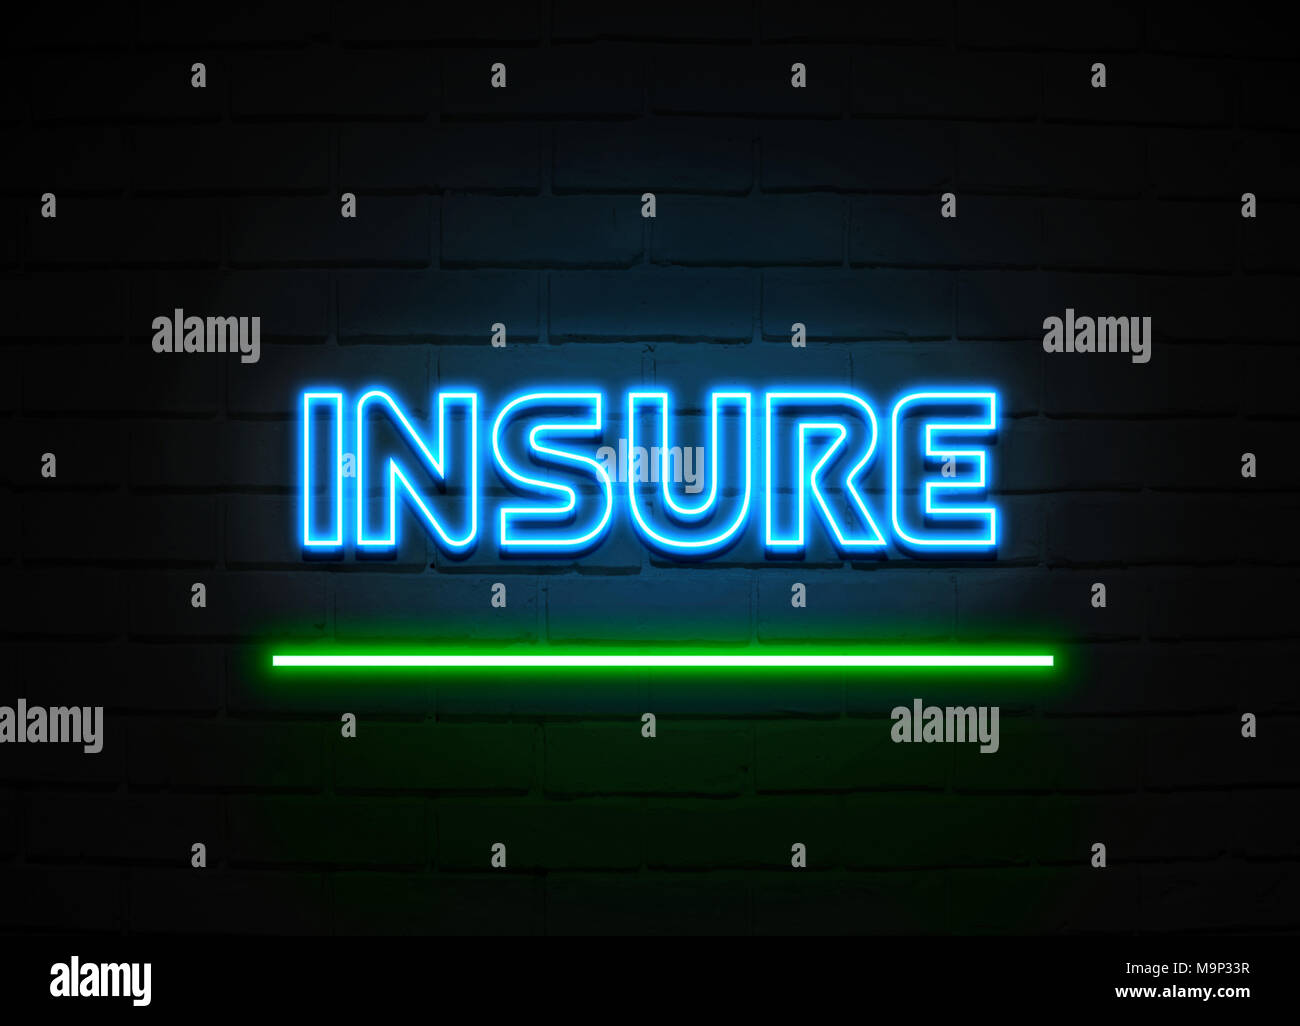 Insure neon sign - Glowing Neon Sign on brickwall wall - 3D rendered royalty free stock illustration. - Stock Image